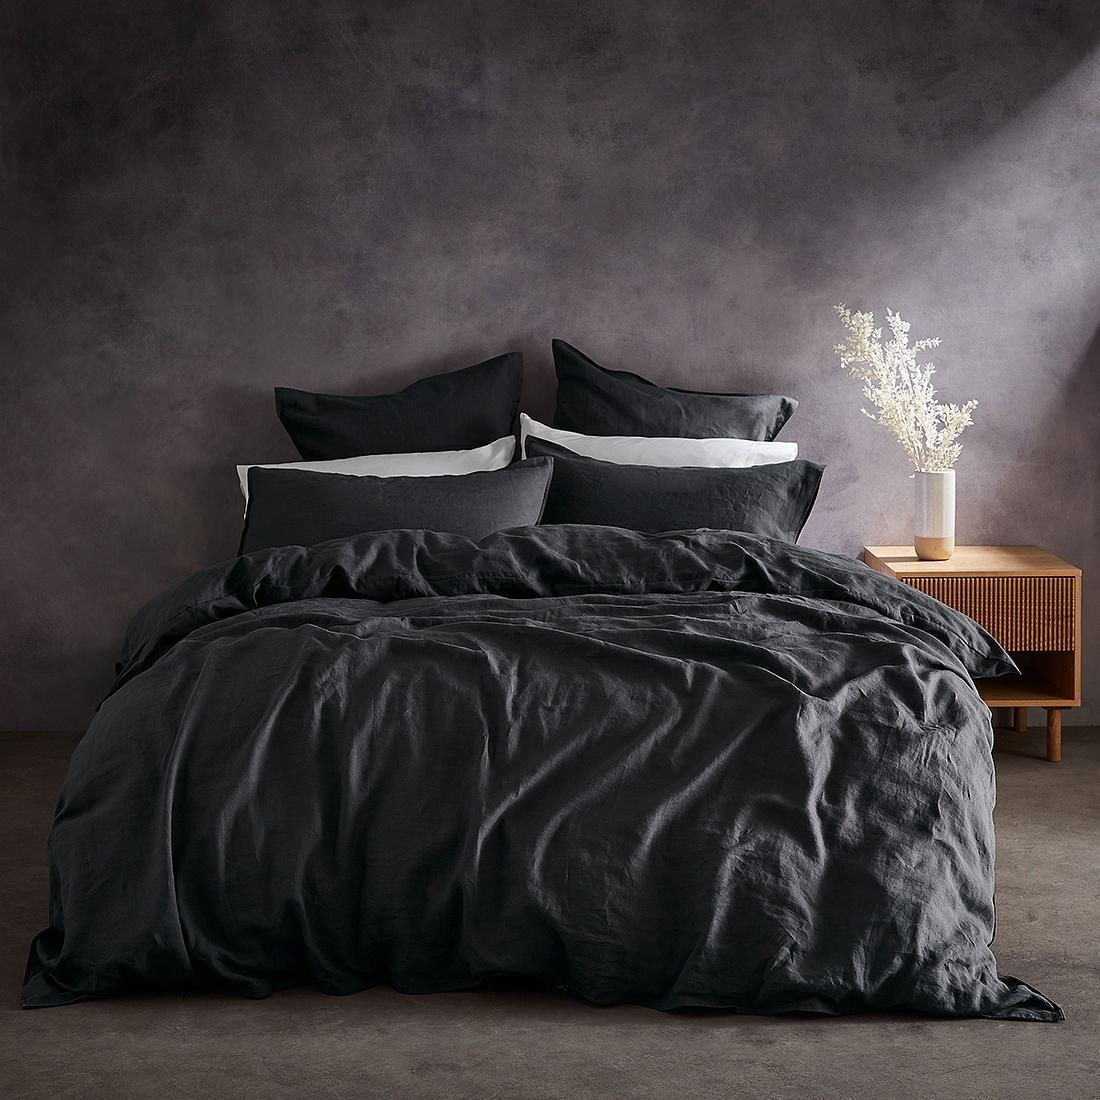 Lilah Linen Quilt Cover Set Charcoal Target Australia In 2020 Quilt Cover Sets Quilt Cover Linen Quilt